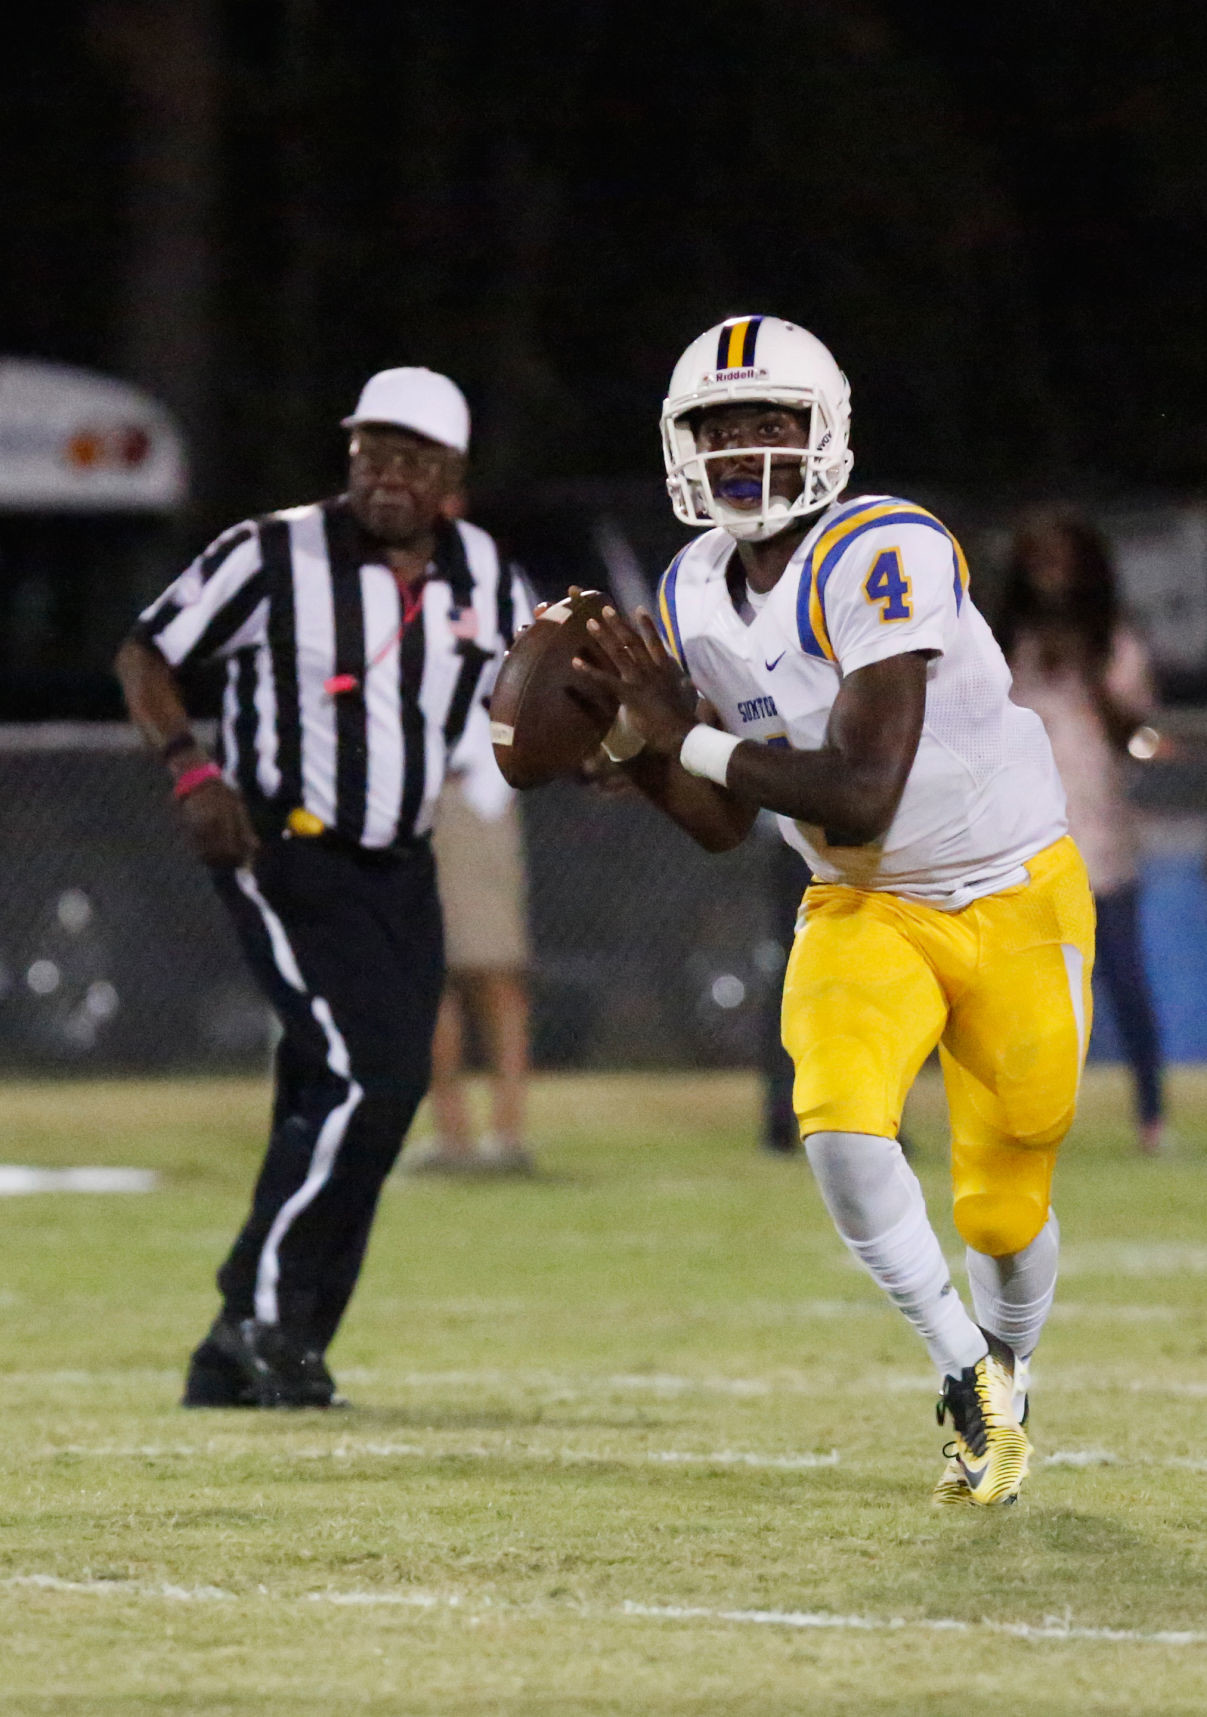 Sumter quarterback Zykiem Jackson (4) looks to thrown down the field in the Gamecocks' 44-6 victory over West Florence on Friday in Florence. Jackson threw for 236 yards and two touchdowns.